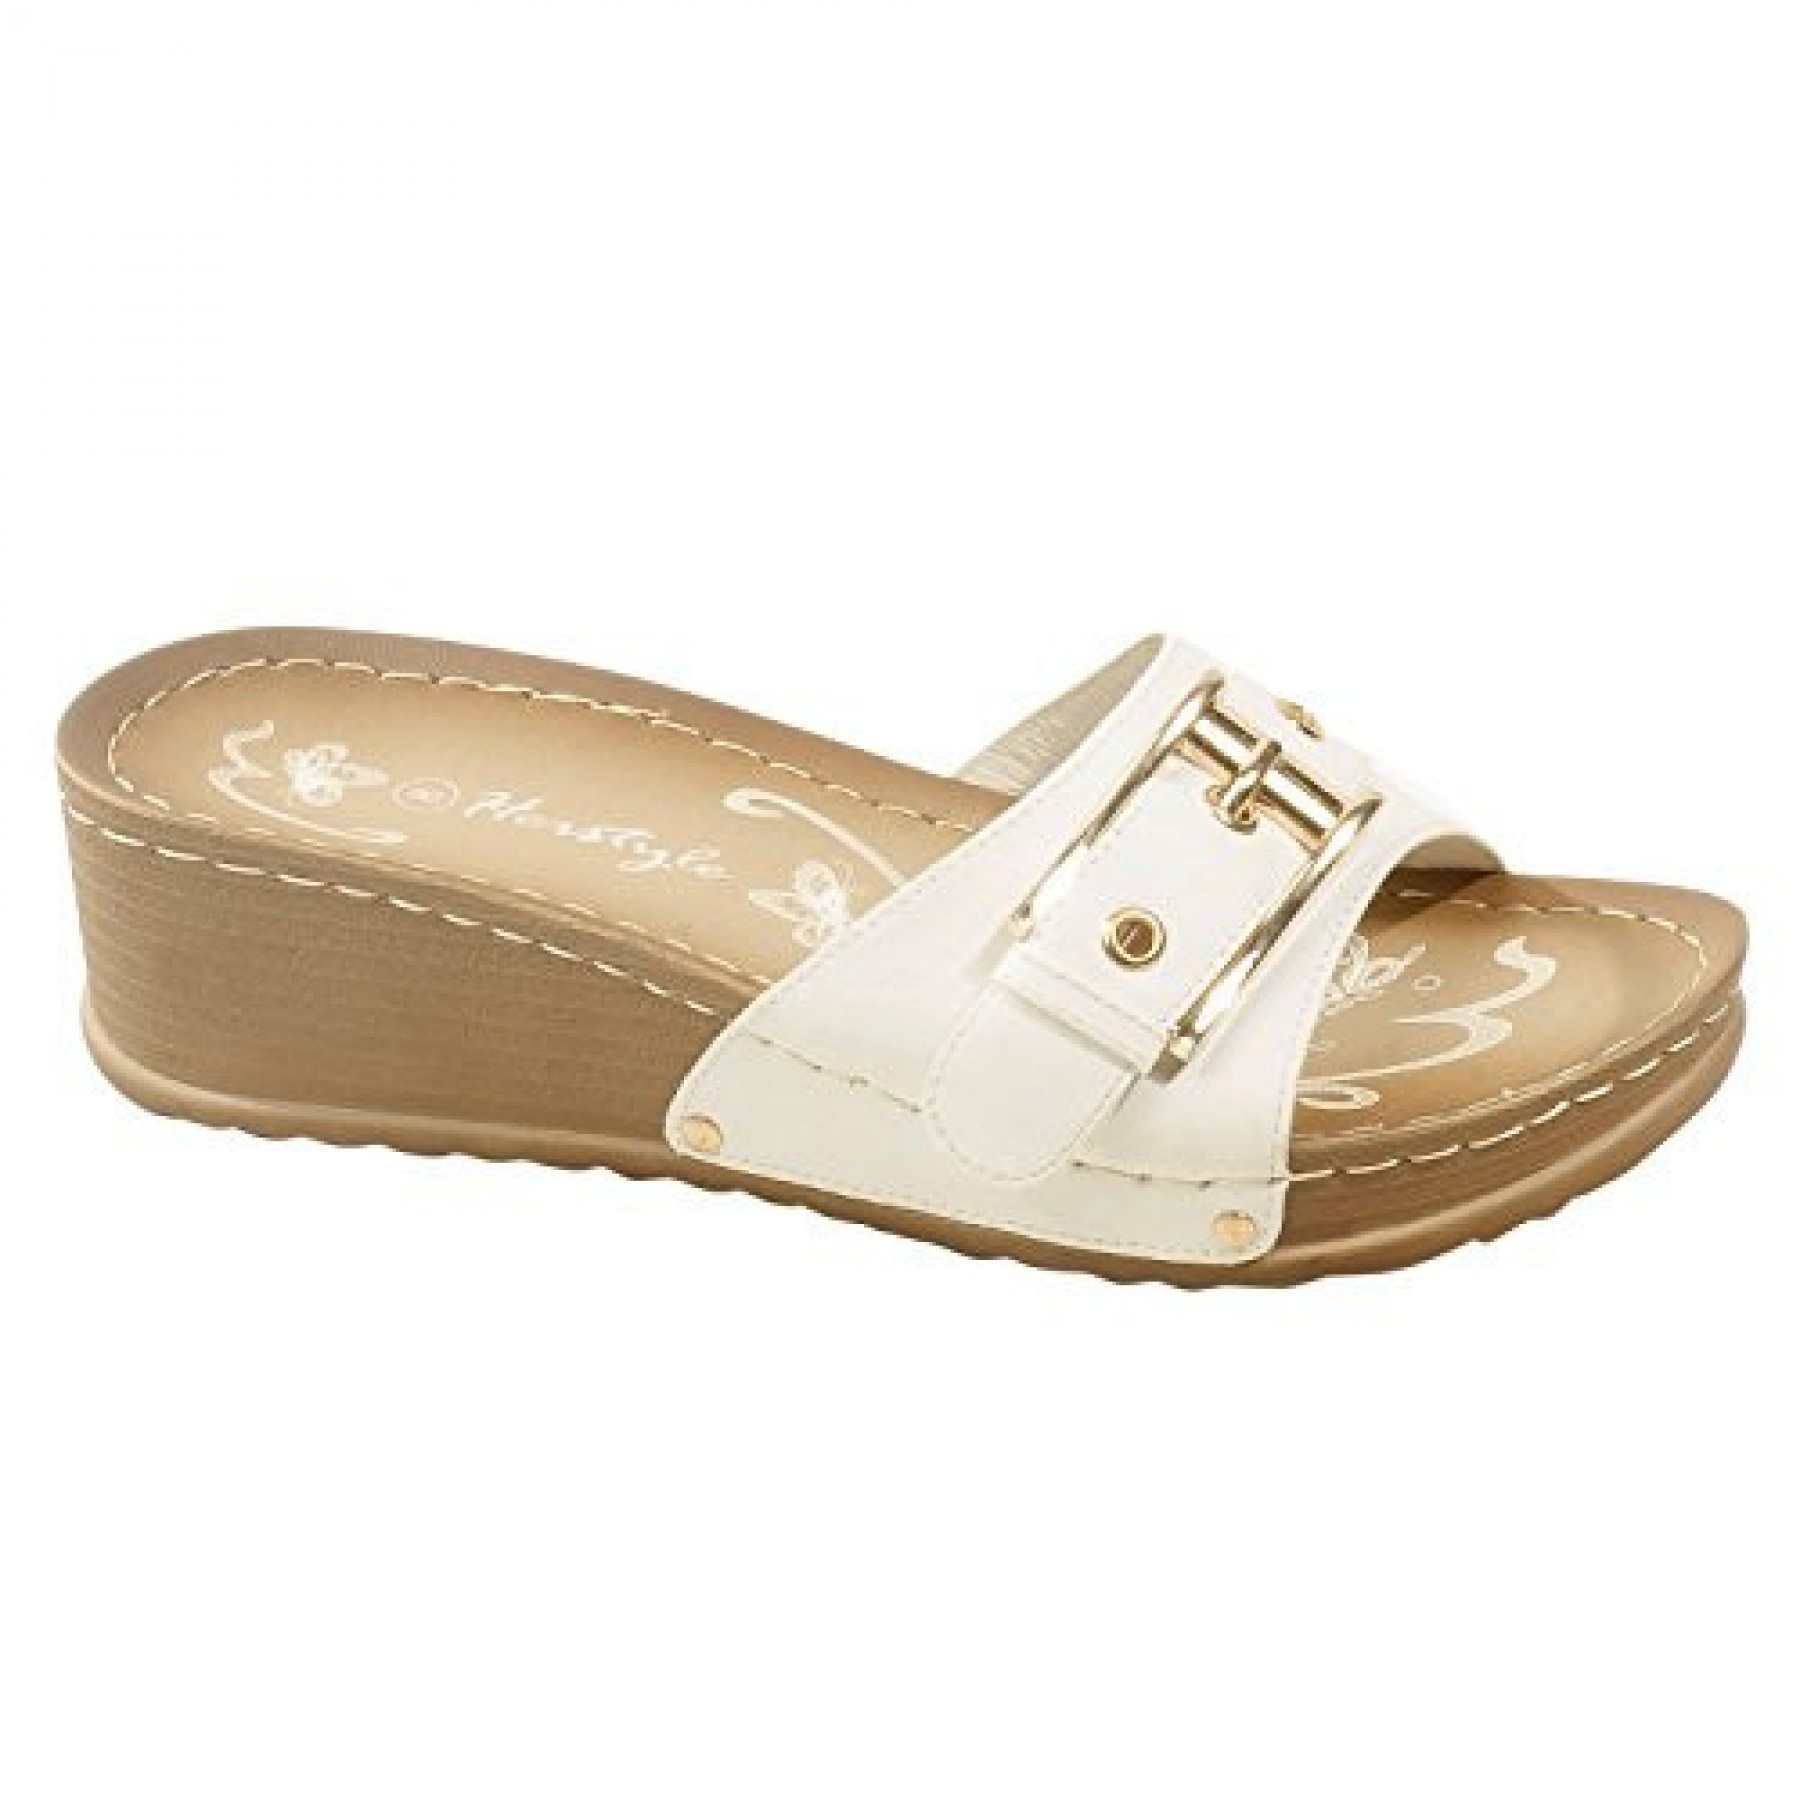 Women's White Manmade Jillyy Slide Sandals with Gold-Tone Toe Buckle